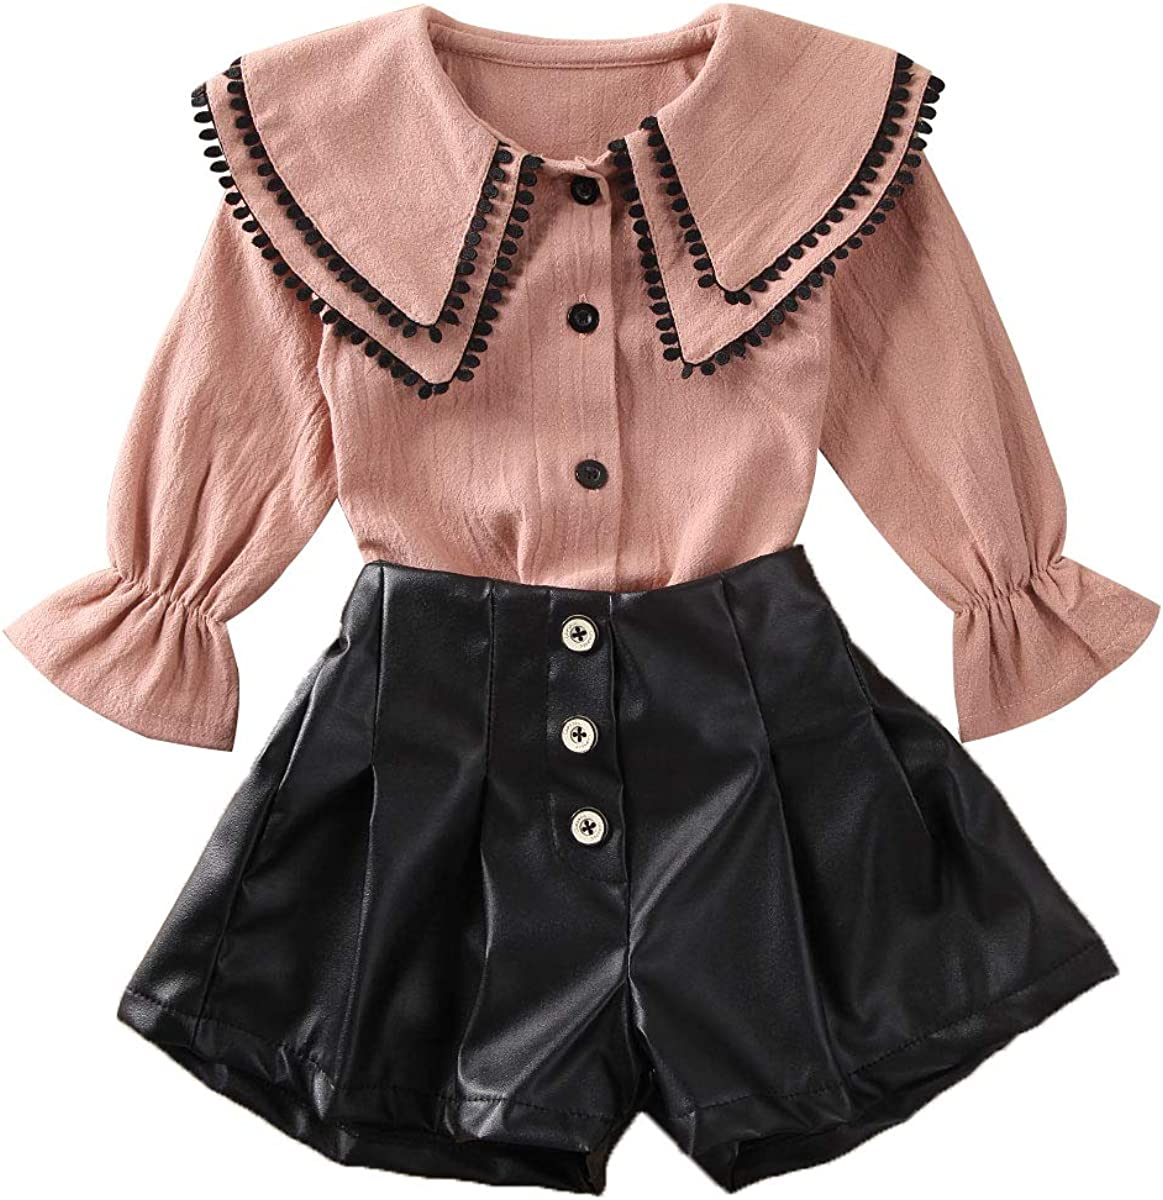 1-6Y Toddler Kids Baby Girl Clothes Ruffle Long Sleeve Button Down Shirts Top +Leather Shorts Skirt Summer Outfits Set